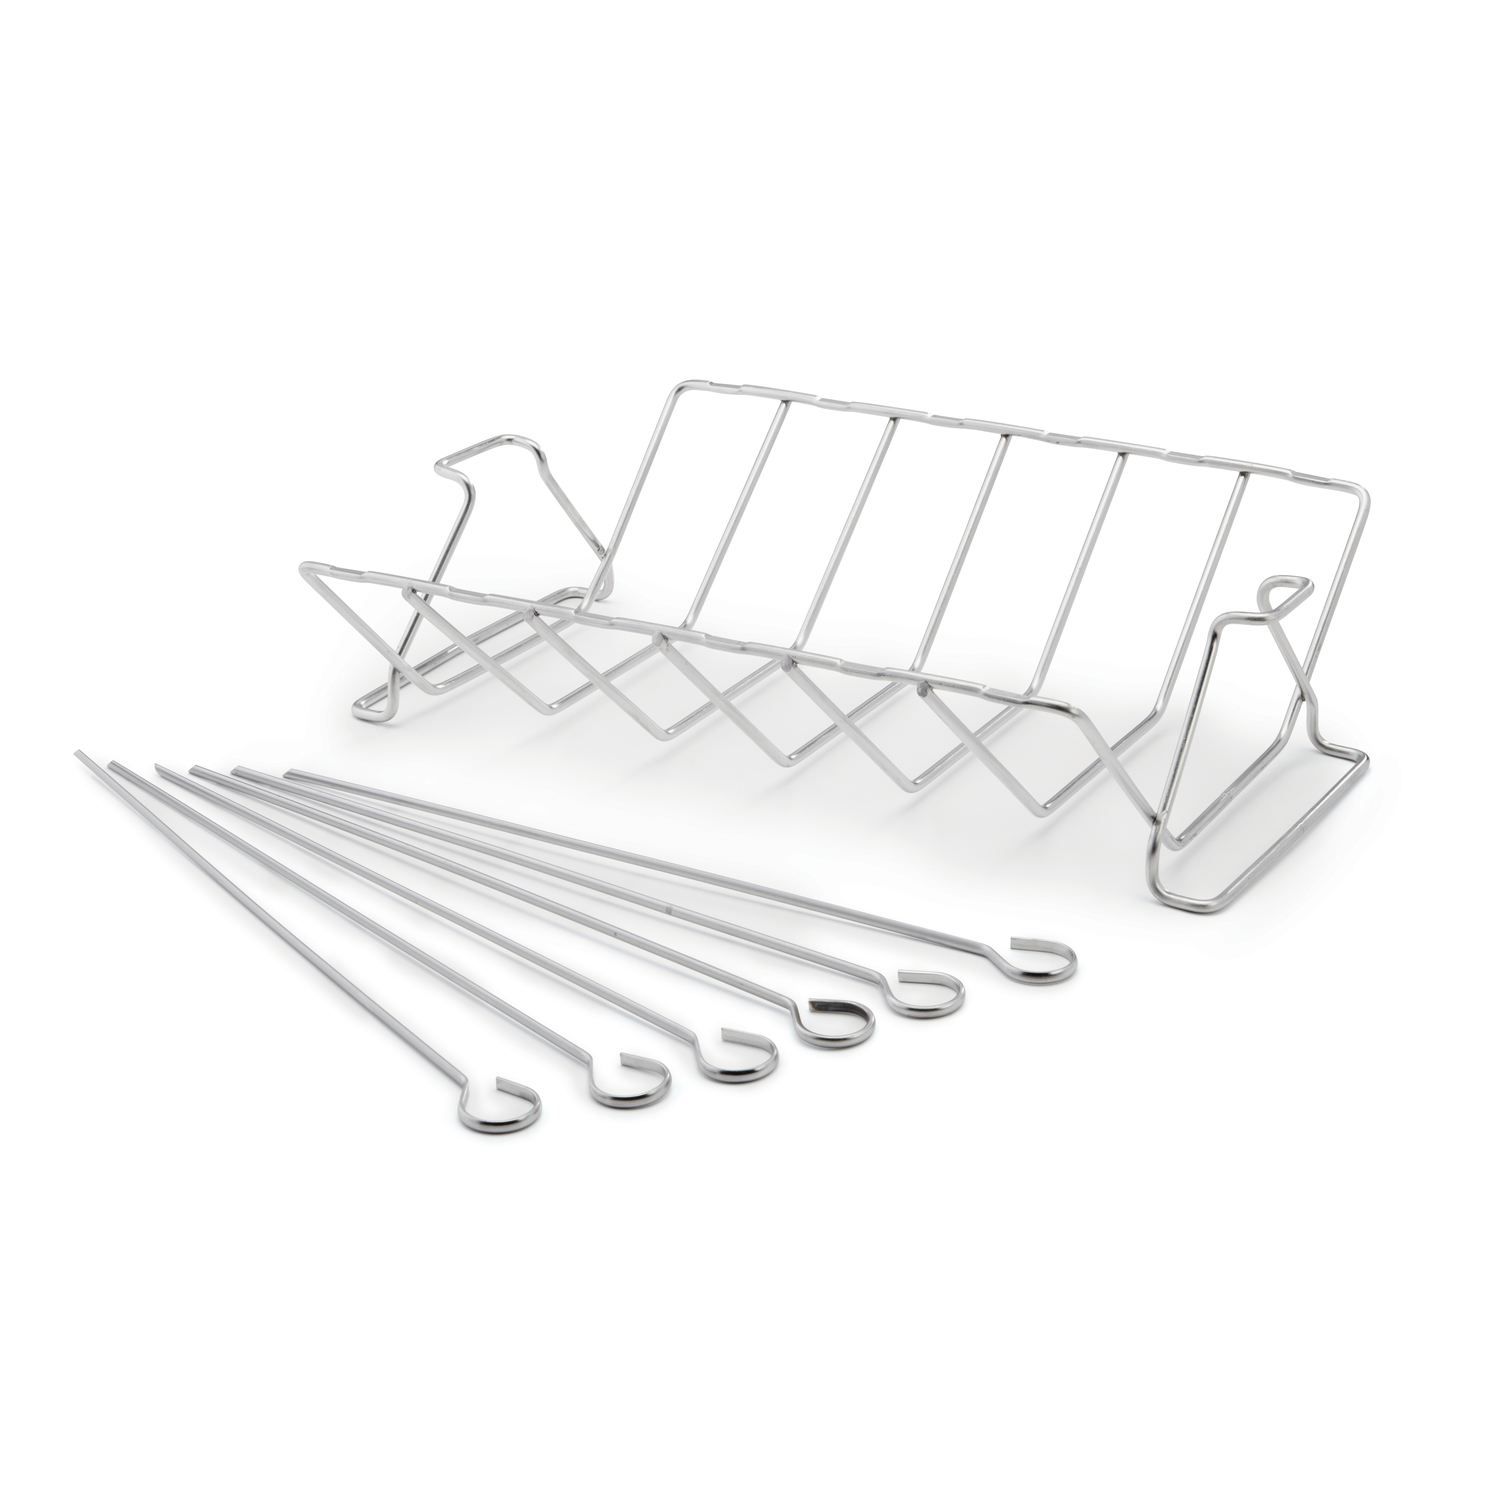 Grill Mark Grill Rack Stainless Steel Stainless steel rib and roast rack with stainless skewers, comes with a set of 6 skewers that can be used on the rack to roast kabobs off of the grill surface. Holds 6 racks of ribs. Easy to clean stainless steel.